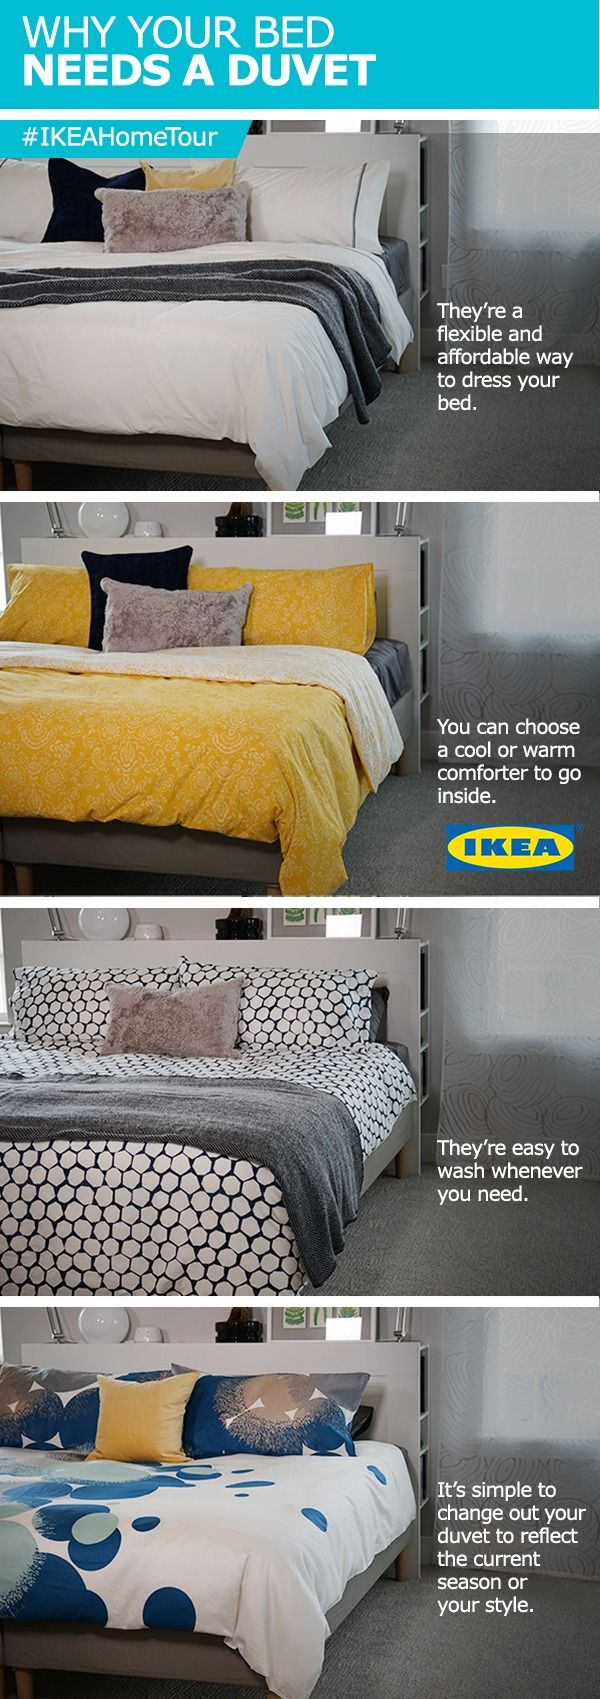 The IKEA Home Tour Squad has 4 reasons why your bed needs a duvet - from their latest master bedroom makeover.  Depending on your preference, you can choose a cool or warm comforter to go inside. Duvets are also a flexible and affordable way to dress your bed so you can wash them or change to fit the season whenever you feel like it!